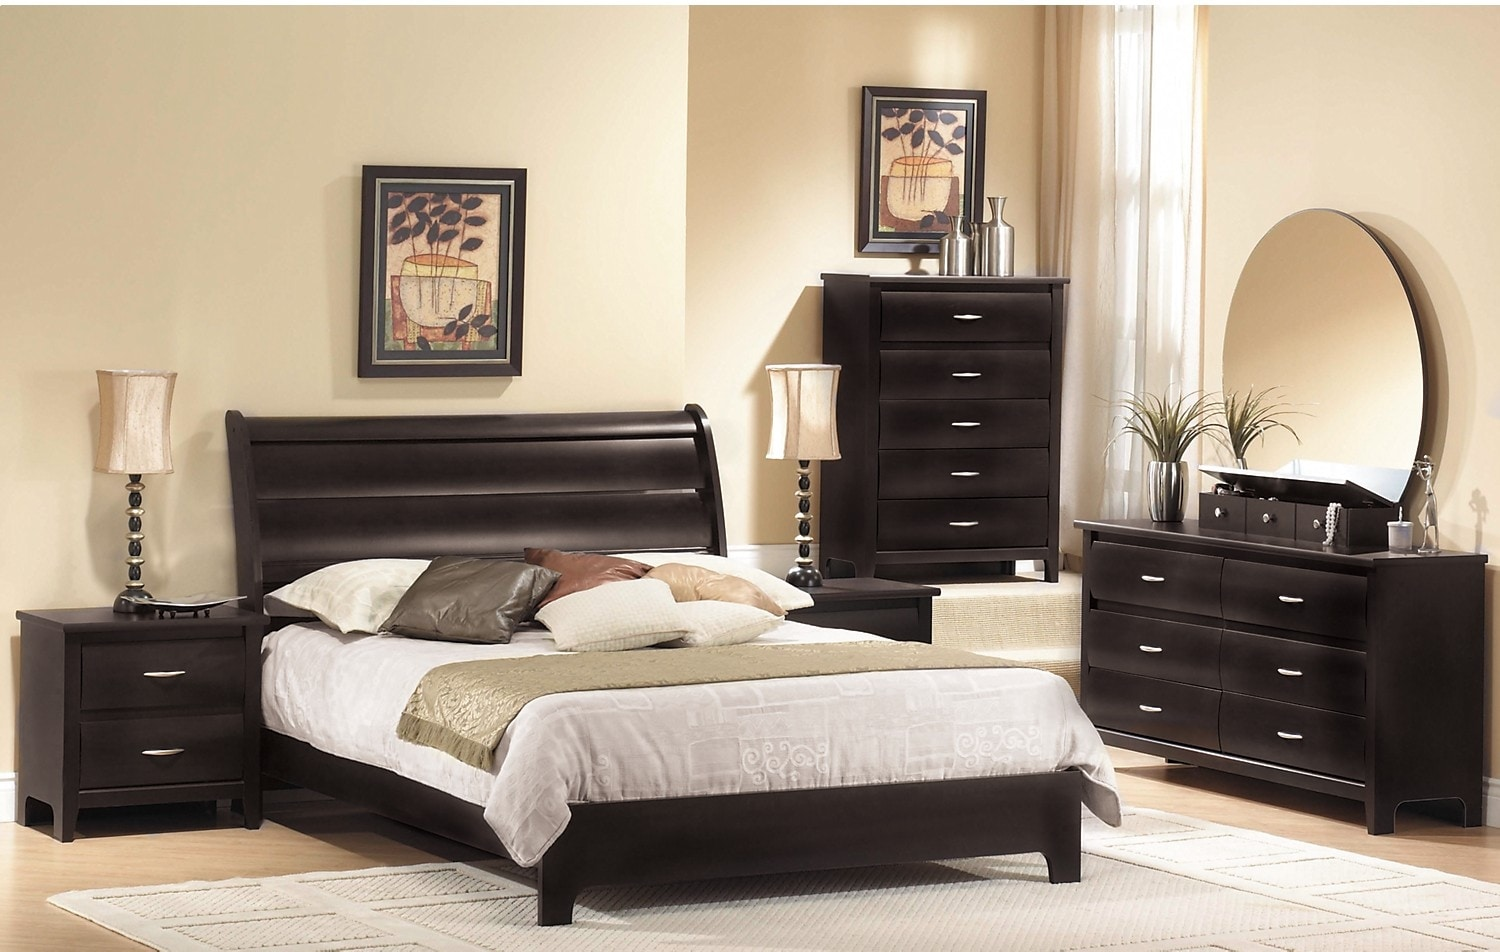 Bedroom Furniture - Mocha 7-Piece Queen Bedroom Package